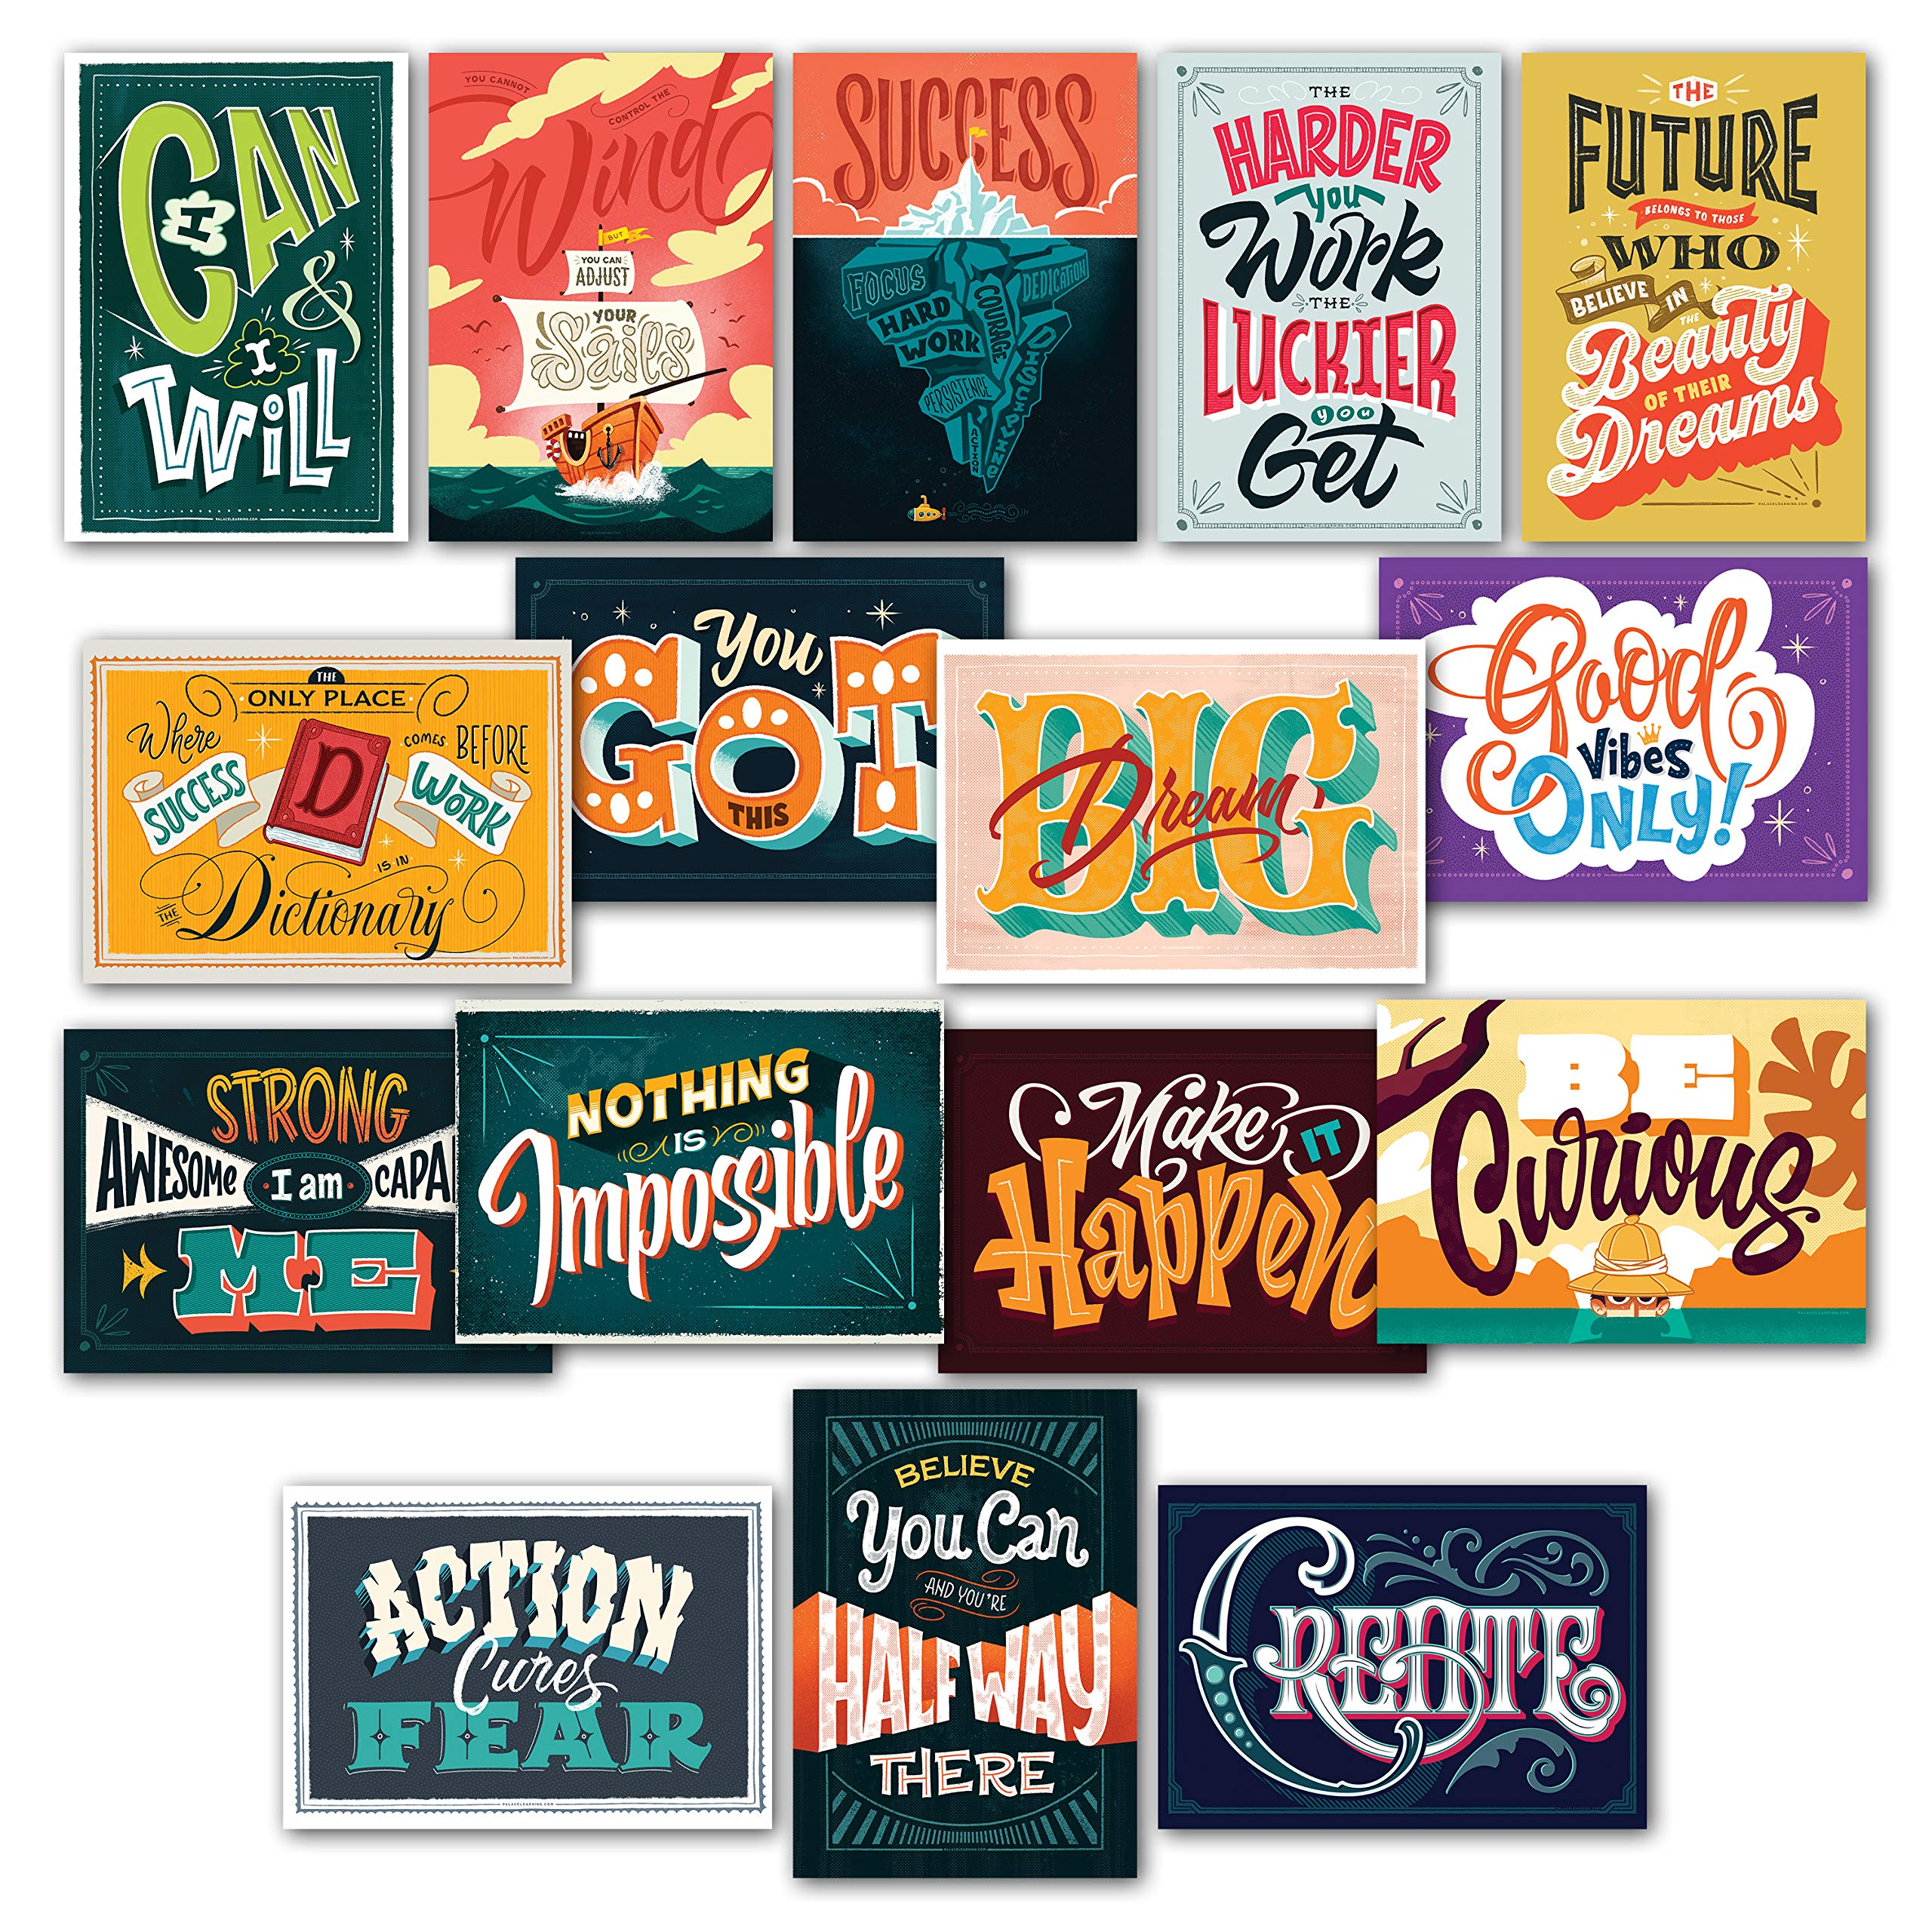 16 Inspirational Classroom Posters - Full Color Motivational Quotes for Students - Teacher Classroom Decorations 13 x 19 (Paper) 003